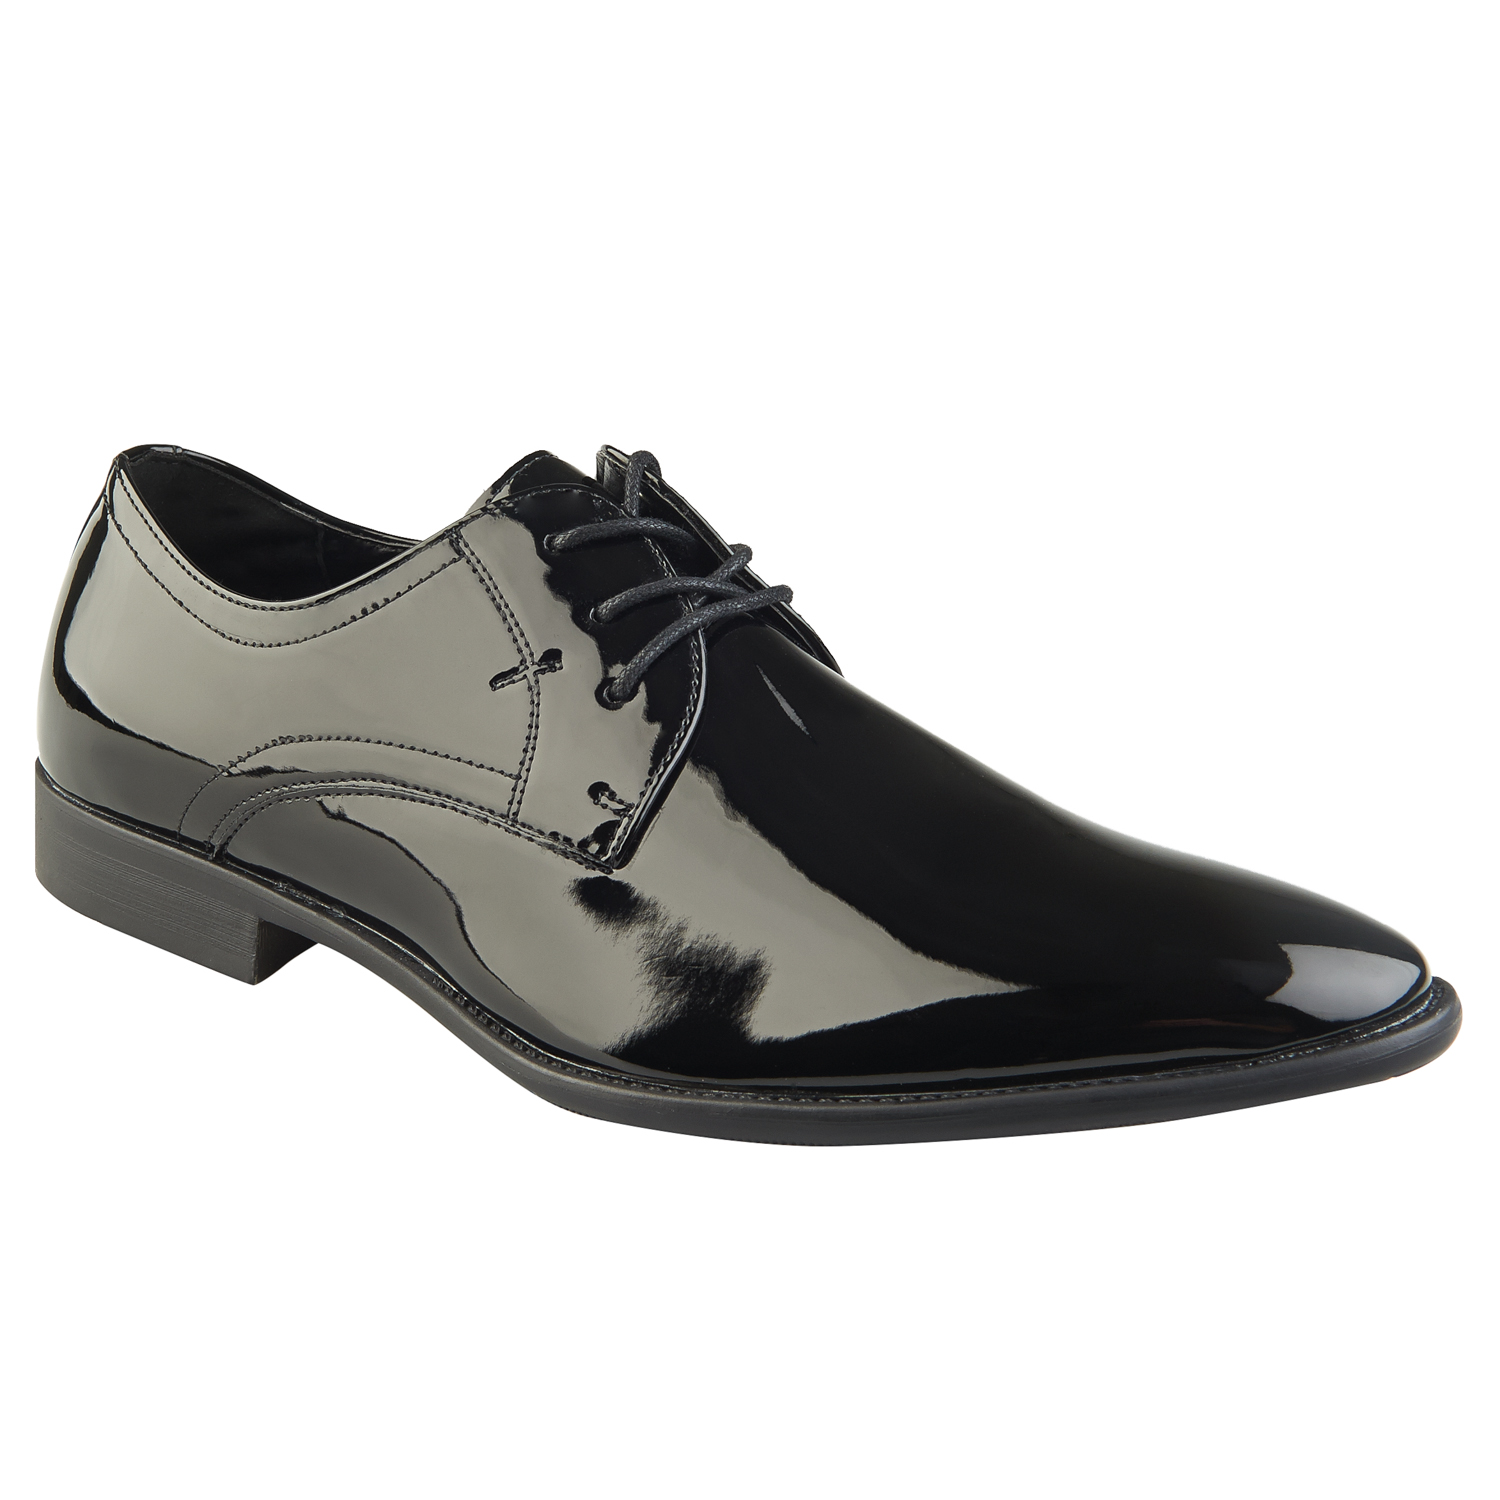 997c608582a41 Moss London Mens Black Patent Shoes Derby Lace up Polished Synthetic Leather